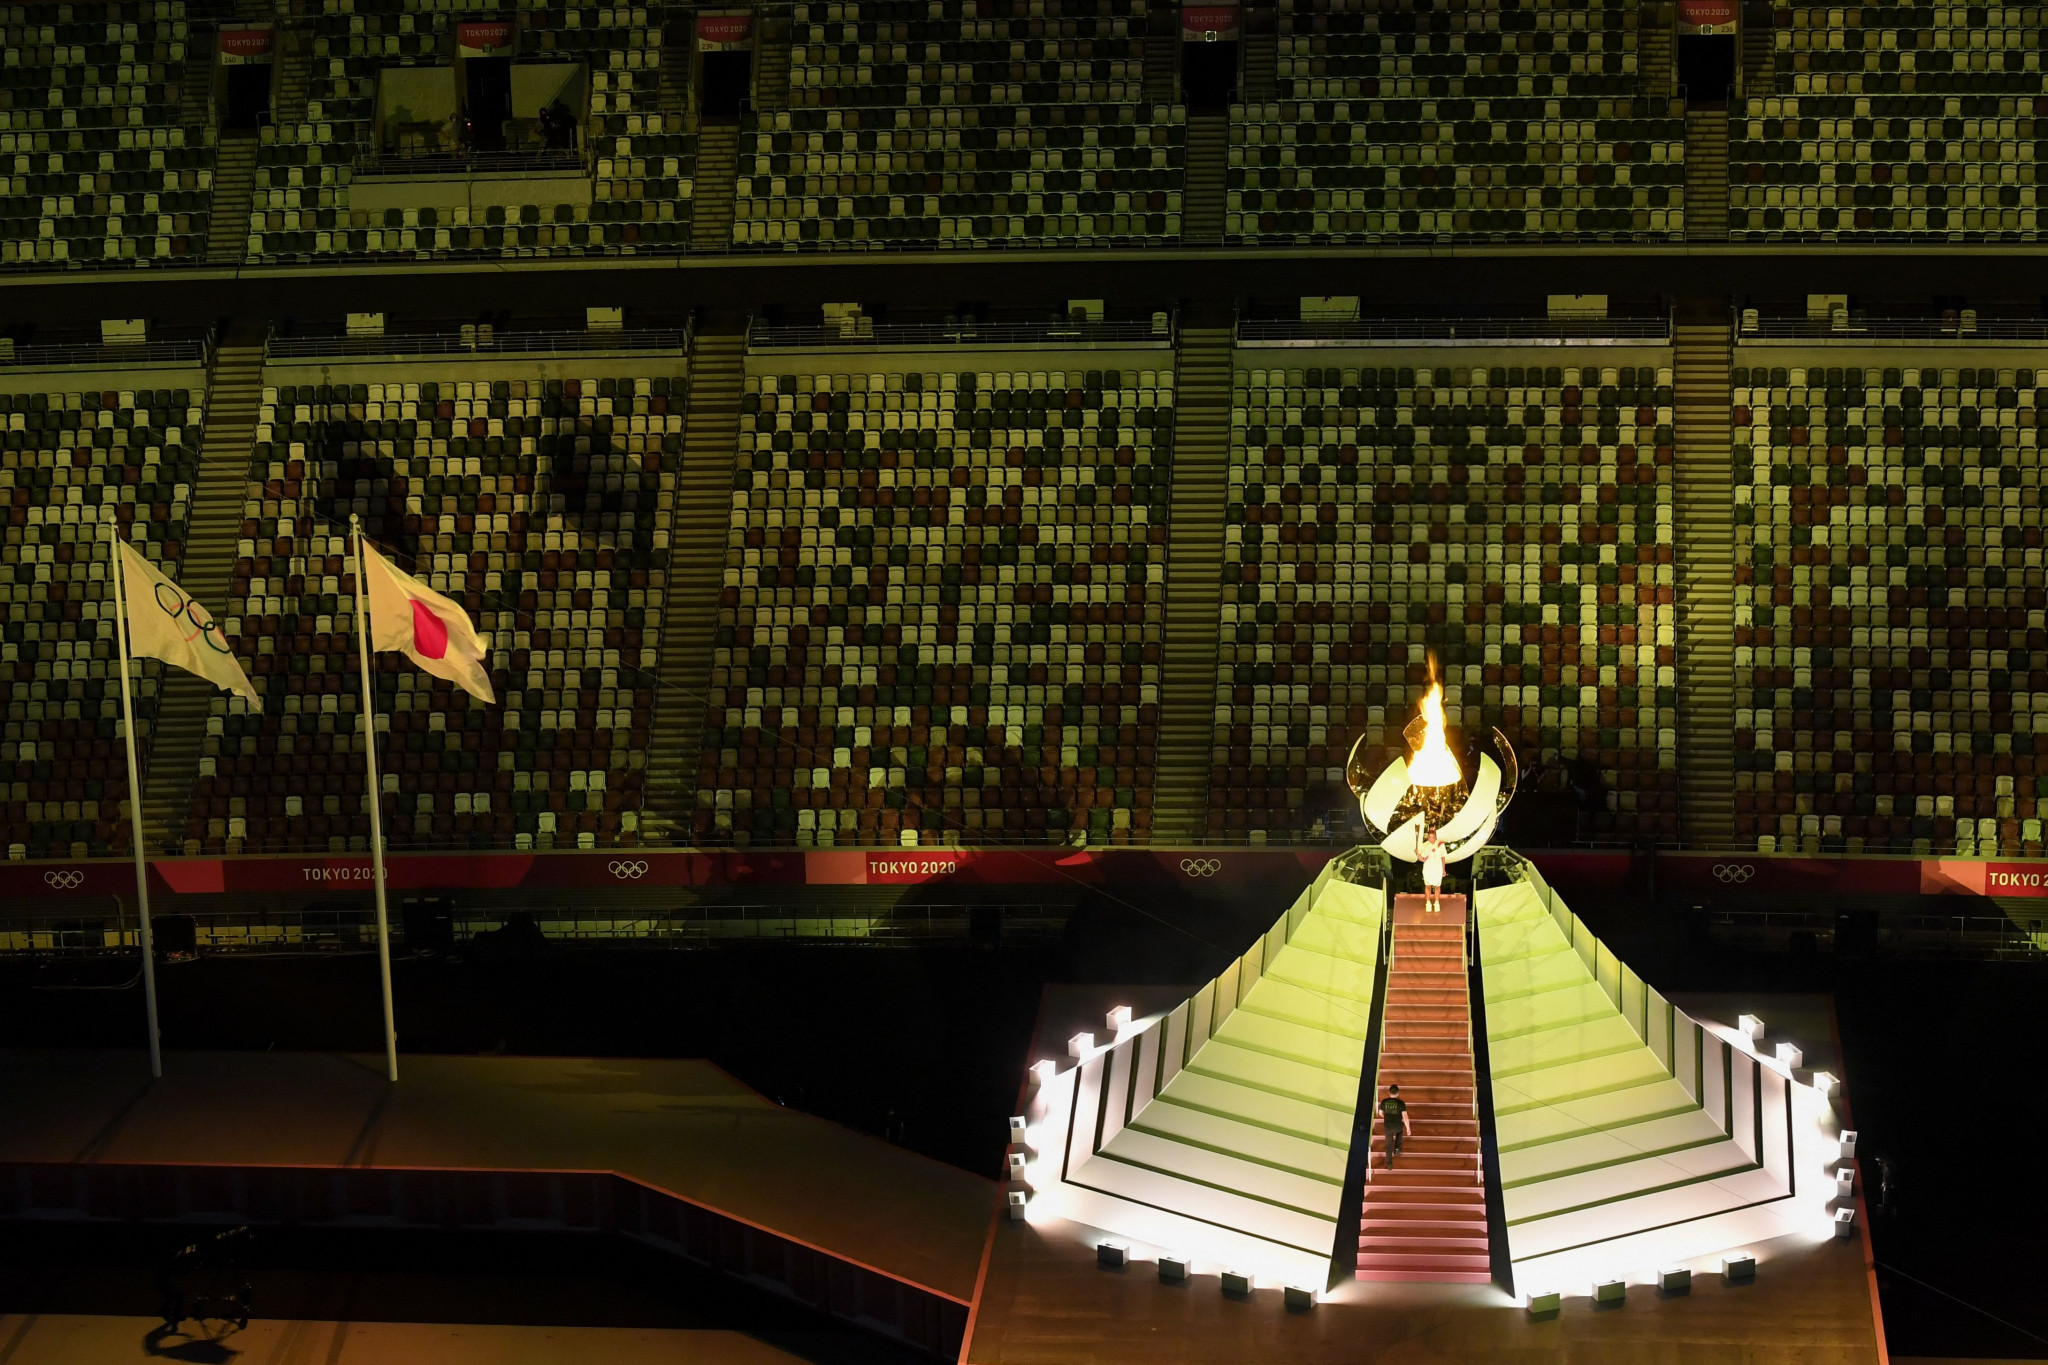 Mixed reaction as world reacts to Tokyo 2020 Opening Ceremony